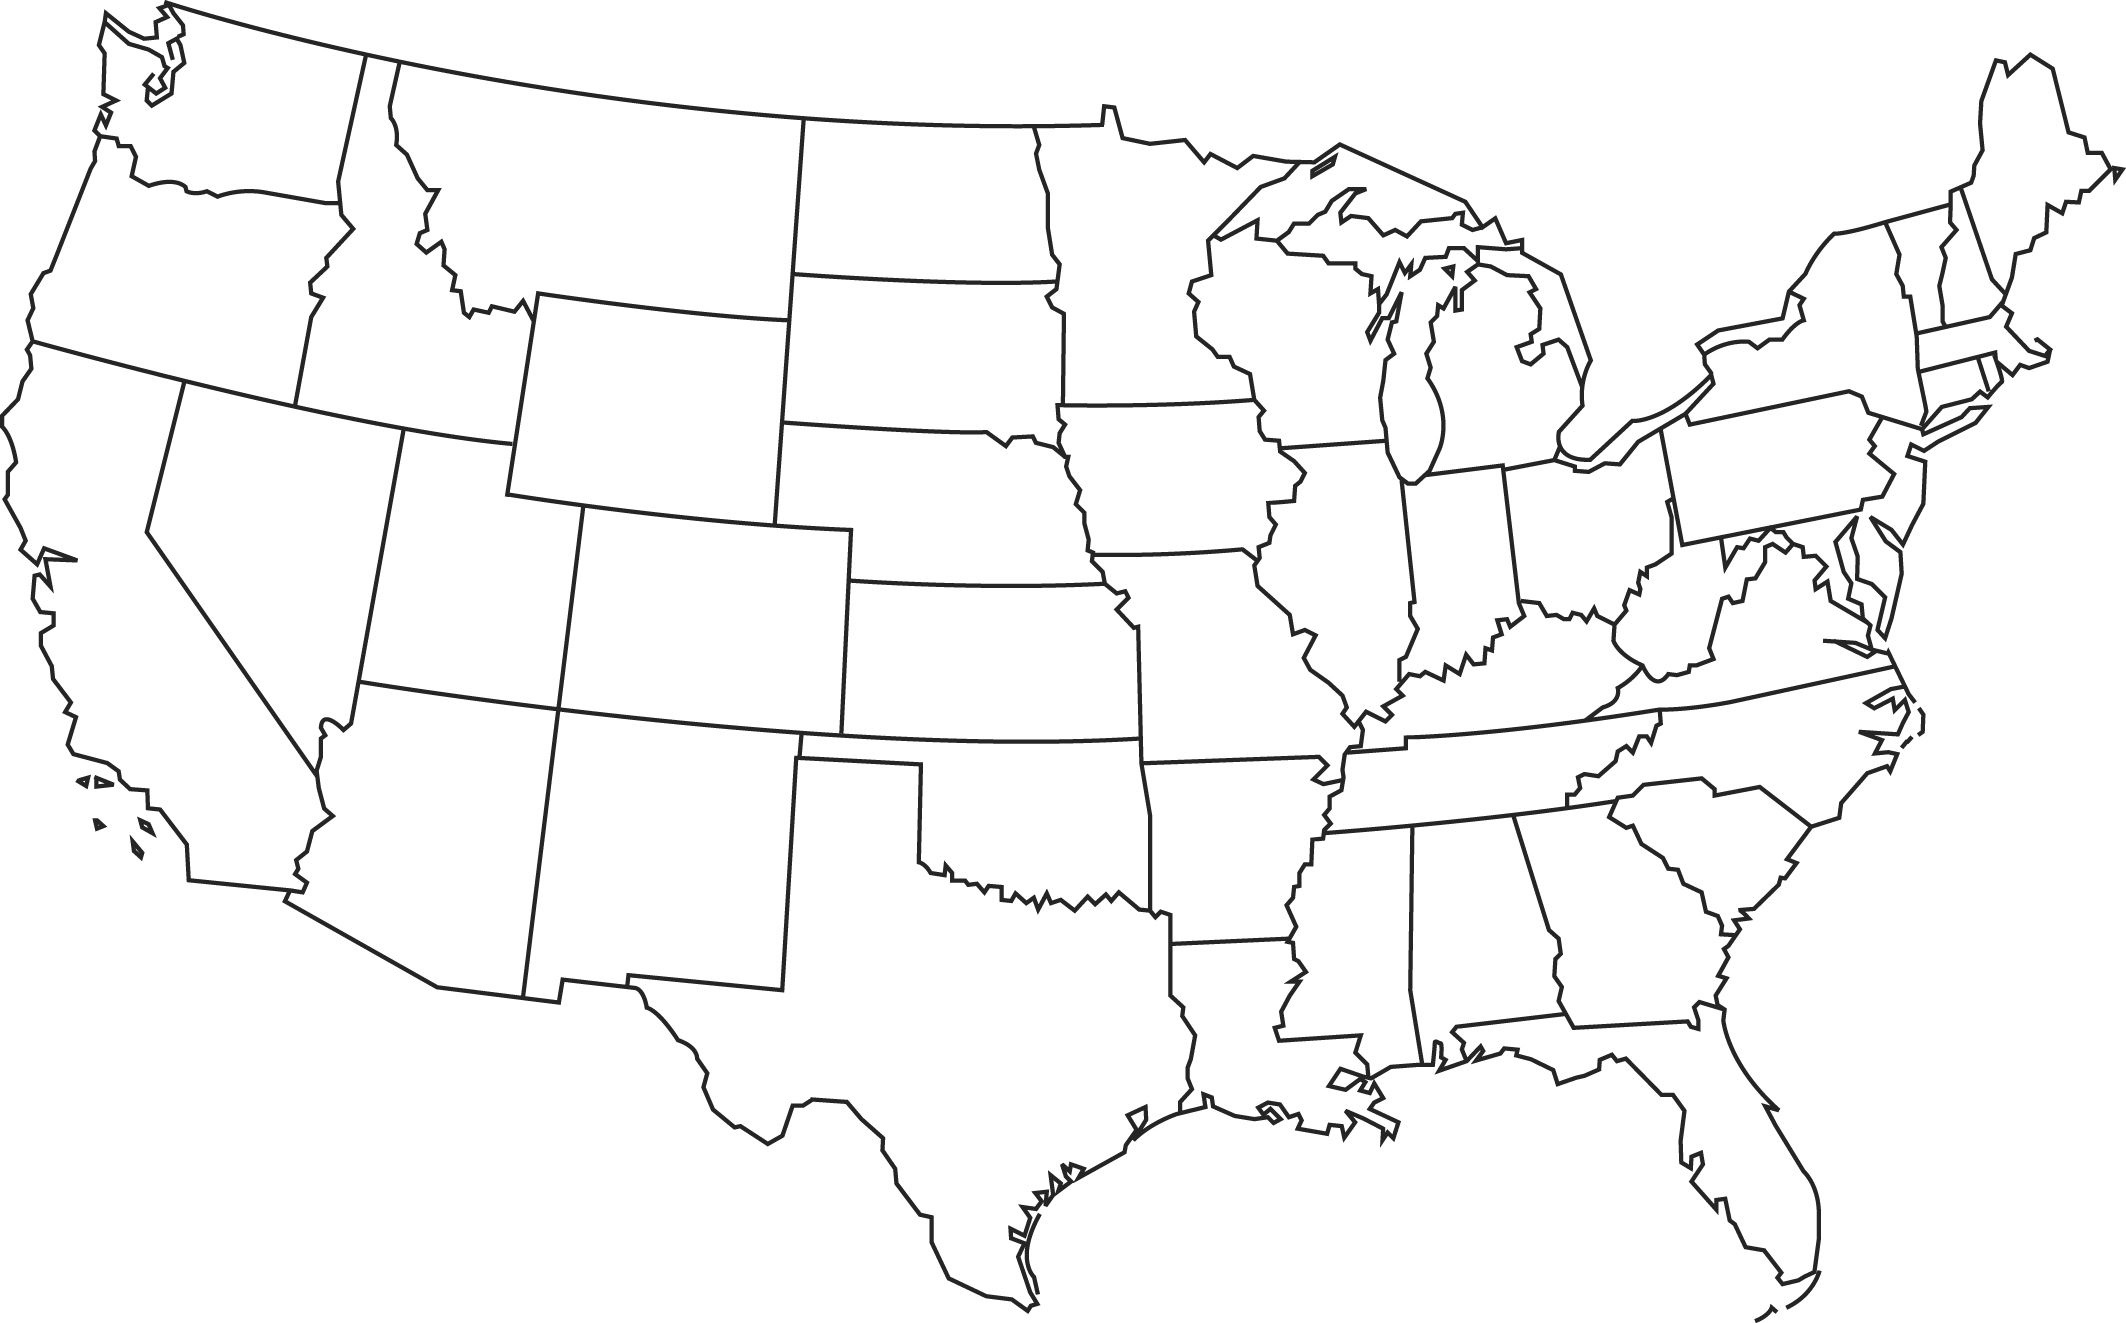 Blank Printable Map Of The Us Clipart Best Clipart Best | Centers - Free Printable Blank Map Of The United States Of America